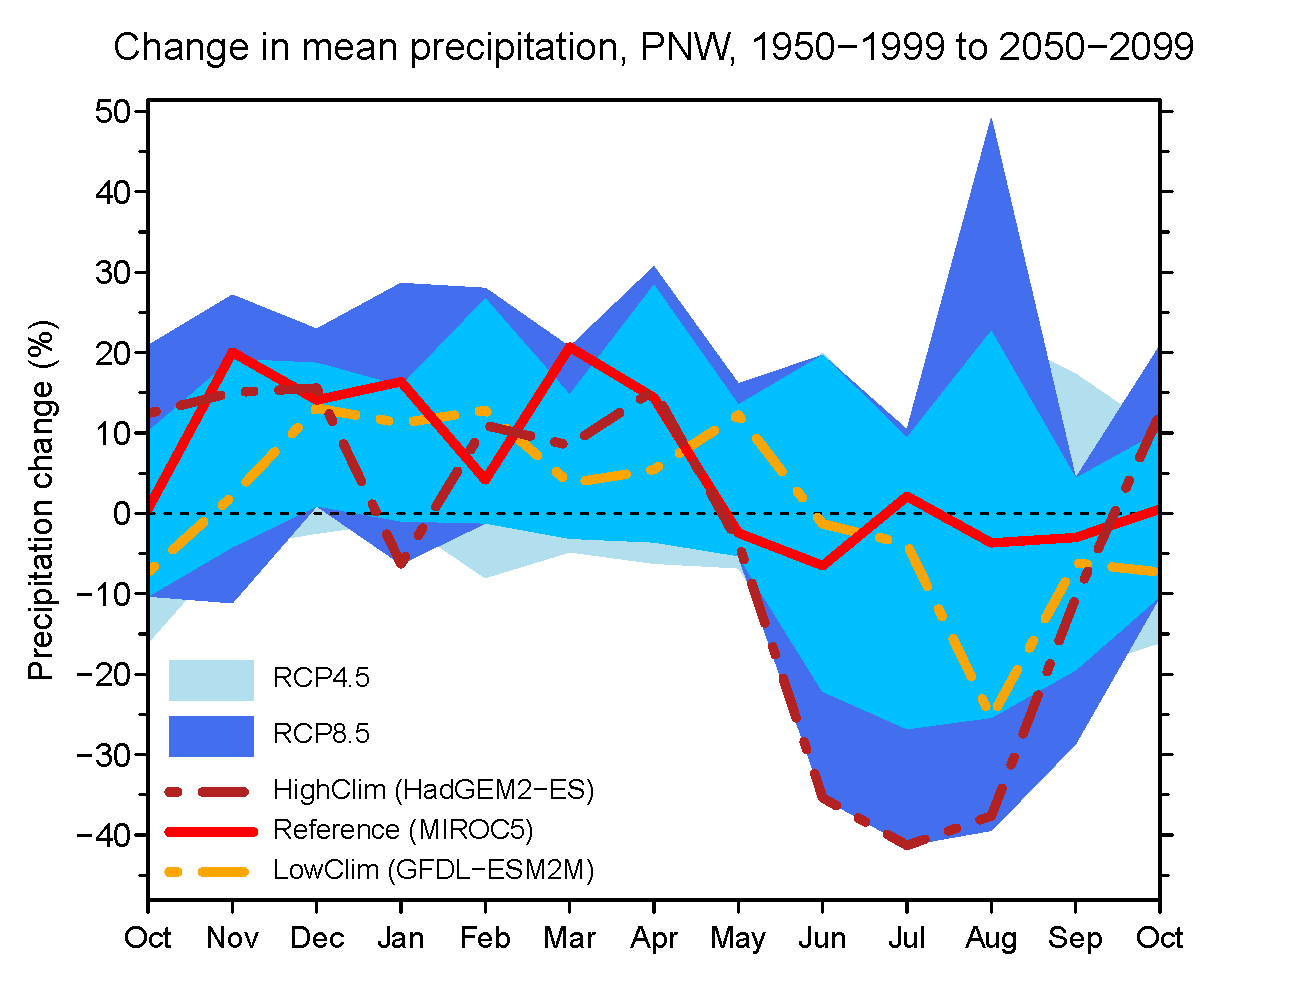 Changes in mean monthly precipitation for the period 2050-2099 from the period 1950-1999.